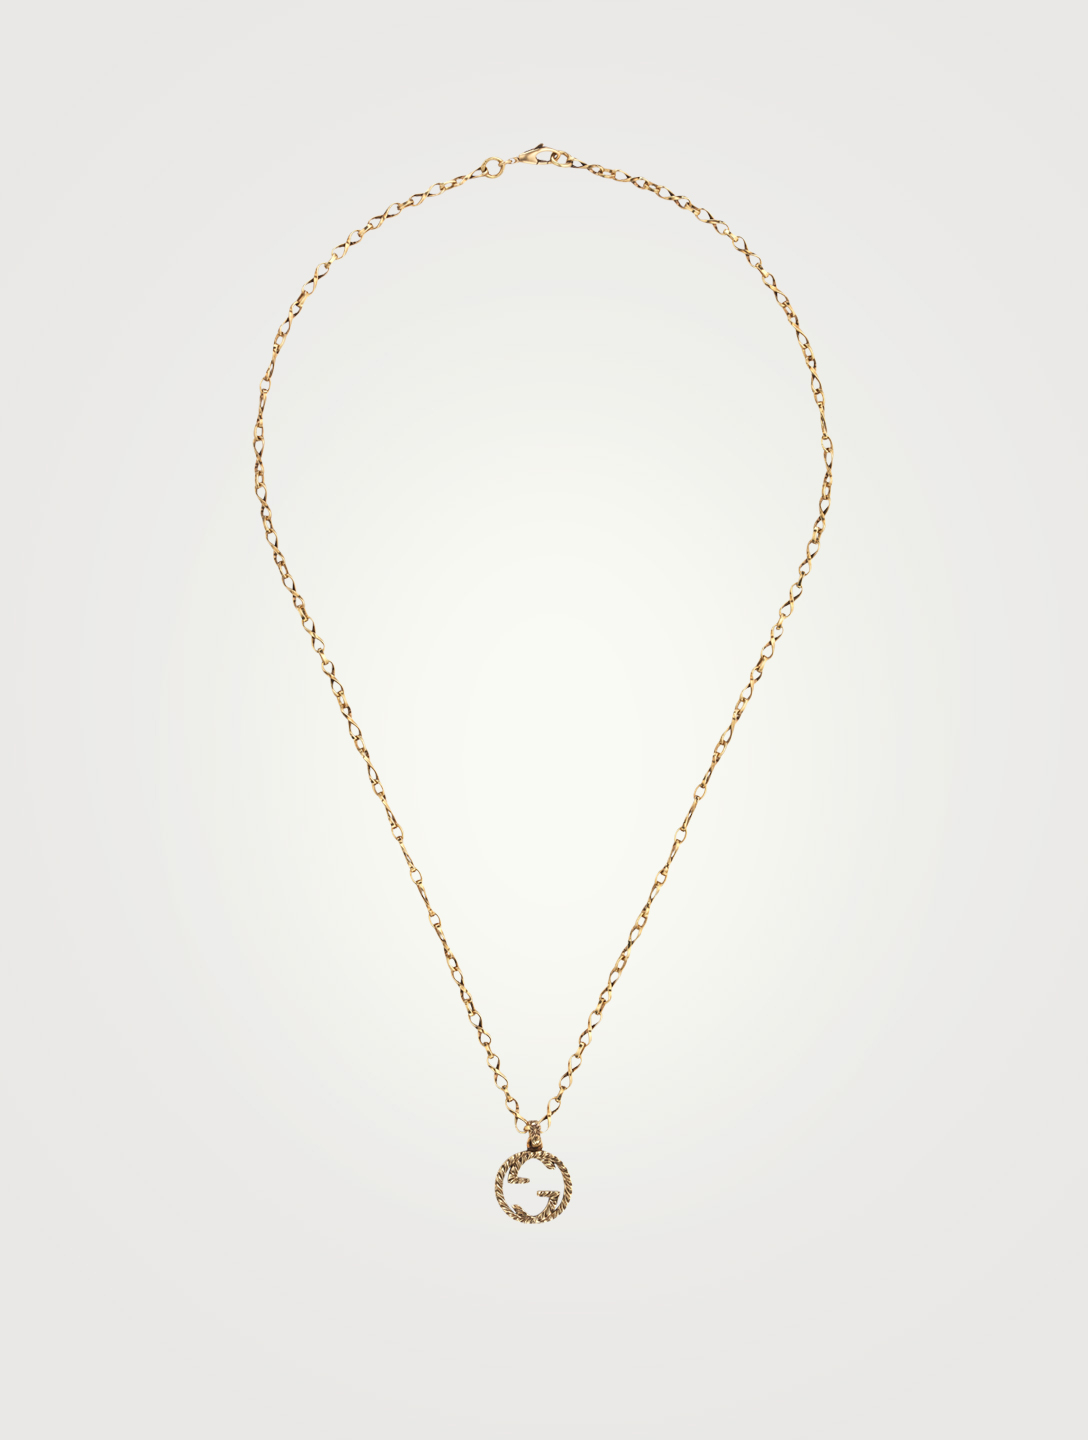 GUCCI 18K Gold Necklace With Interlocking G Women's Metallic